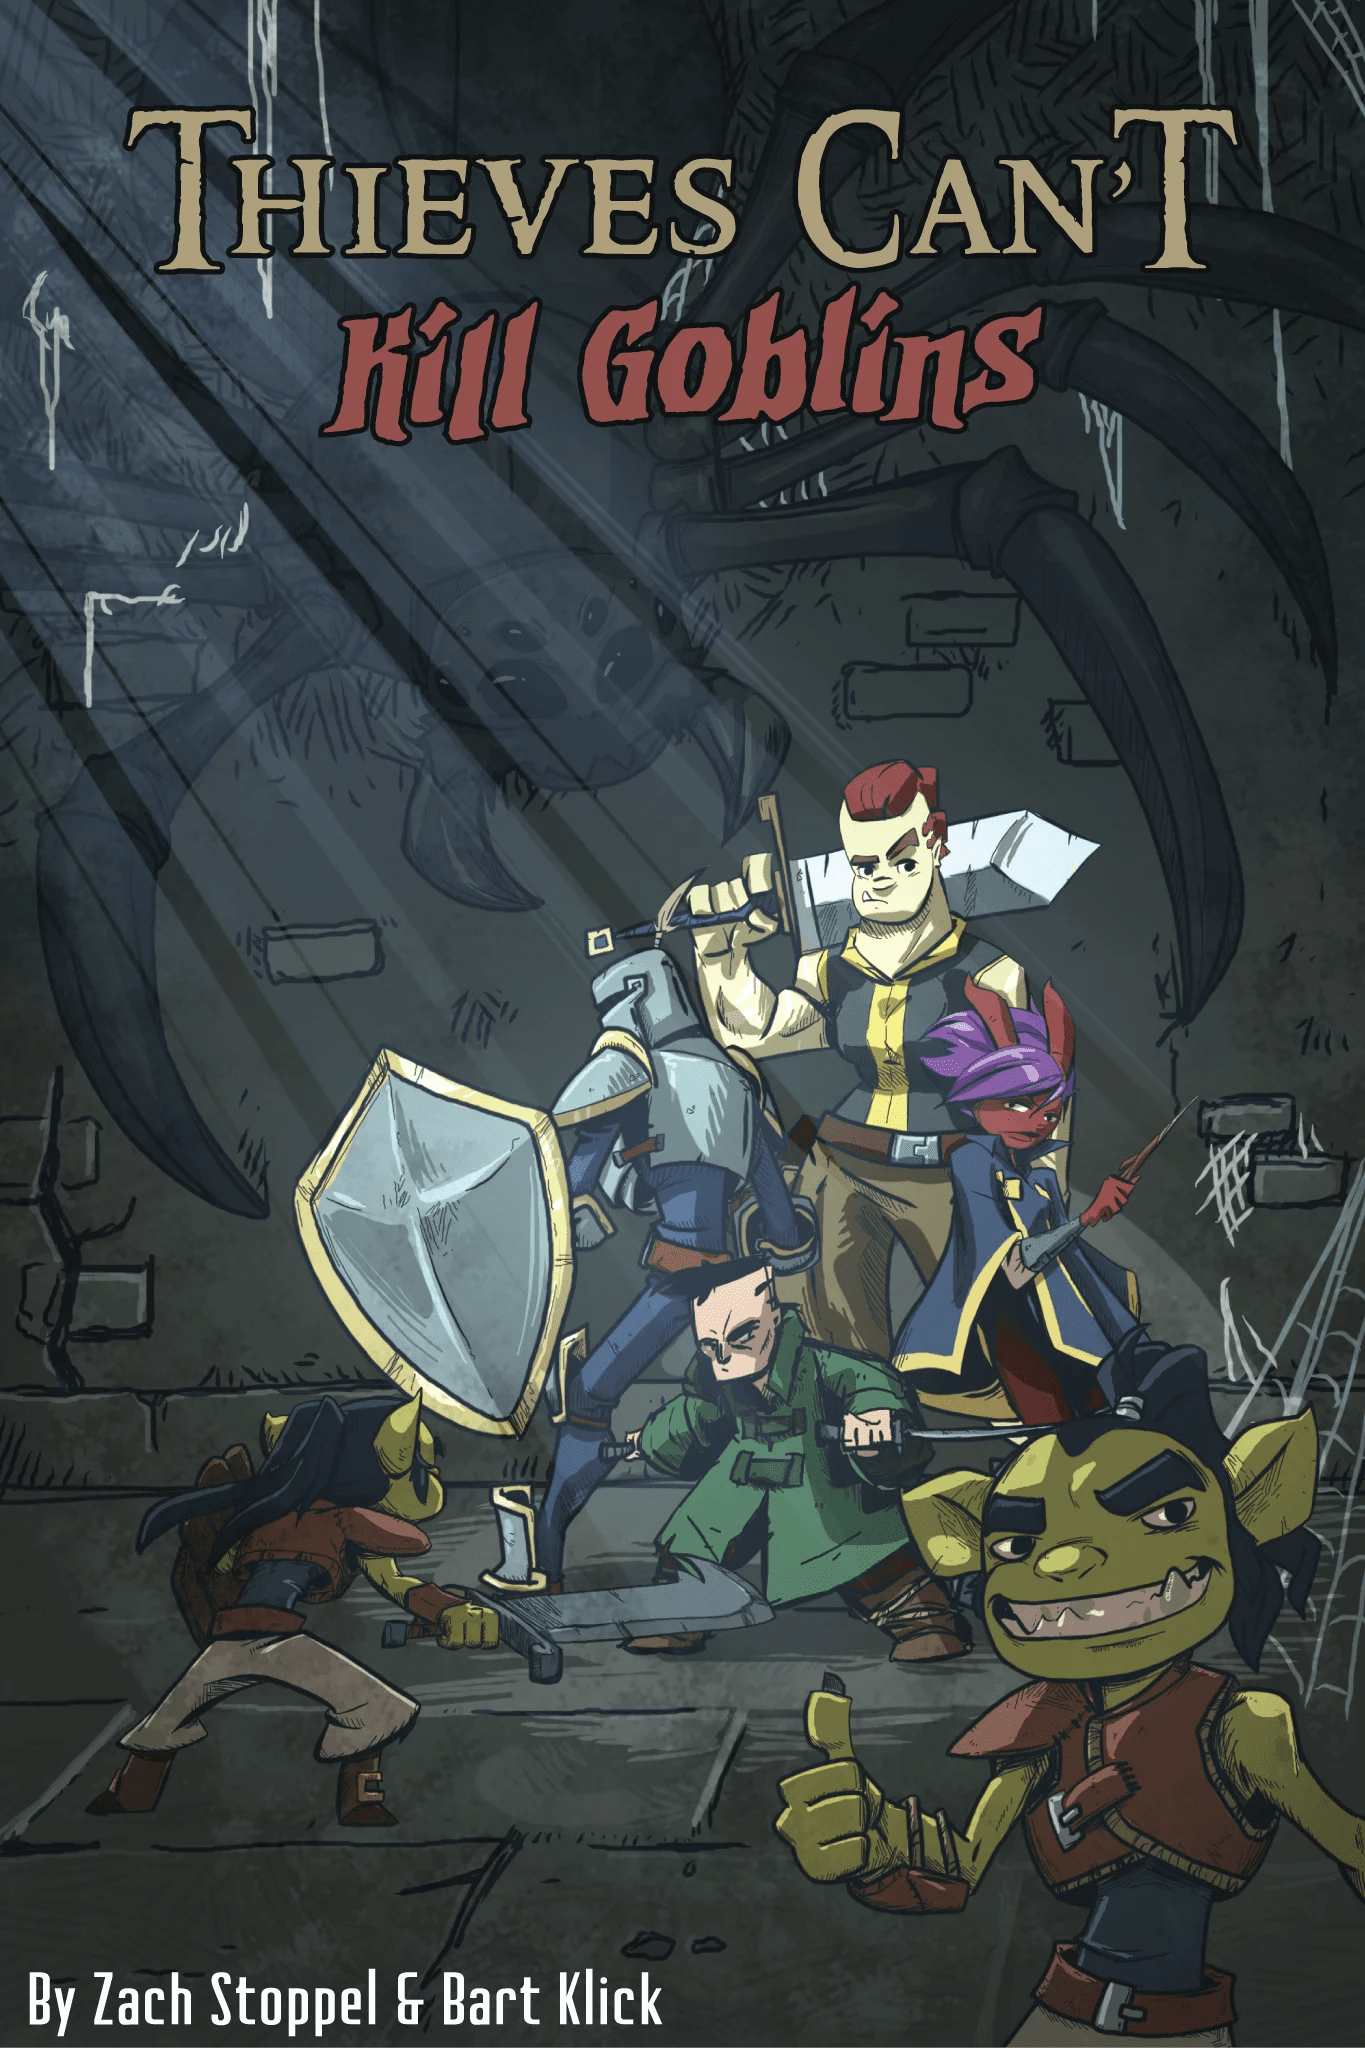 Thieves Can't Kill Goblins